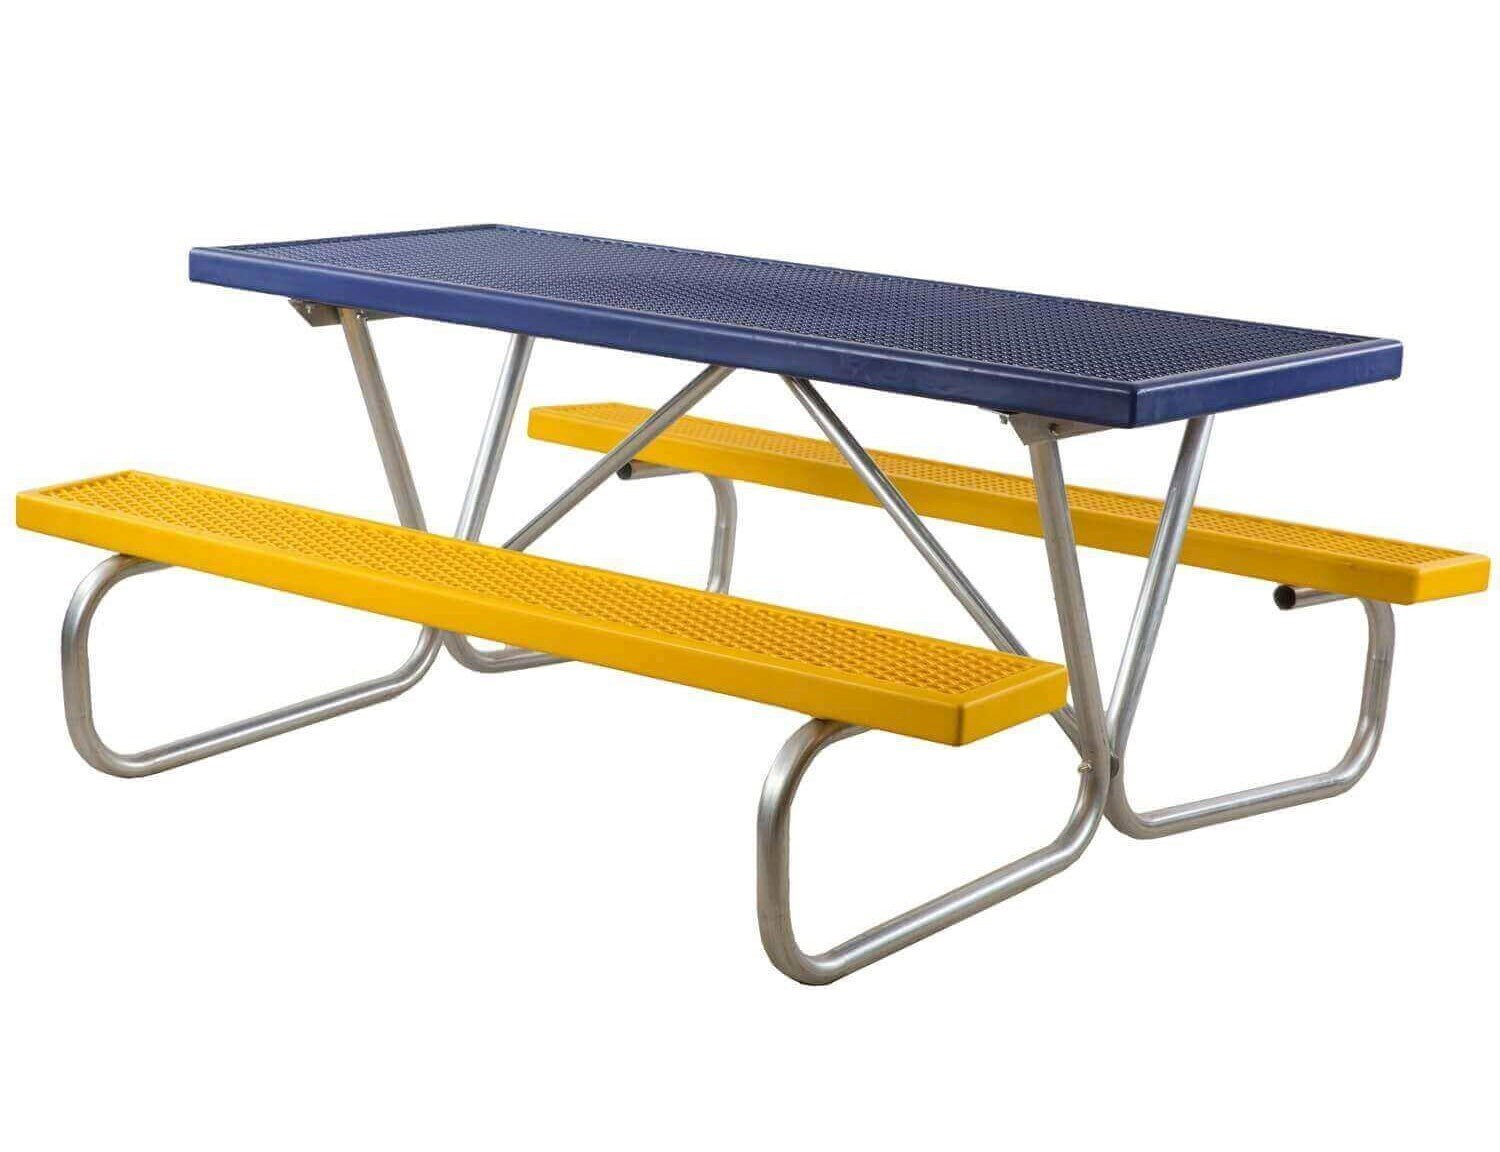 6 ft plastisol coated metal picnic table with galvanized bolted 6 ft plastisol coated metal picnic table with bolted galvanized frame watchthetrailerfo